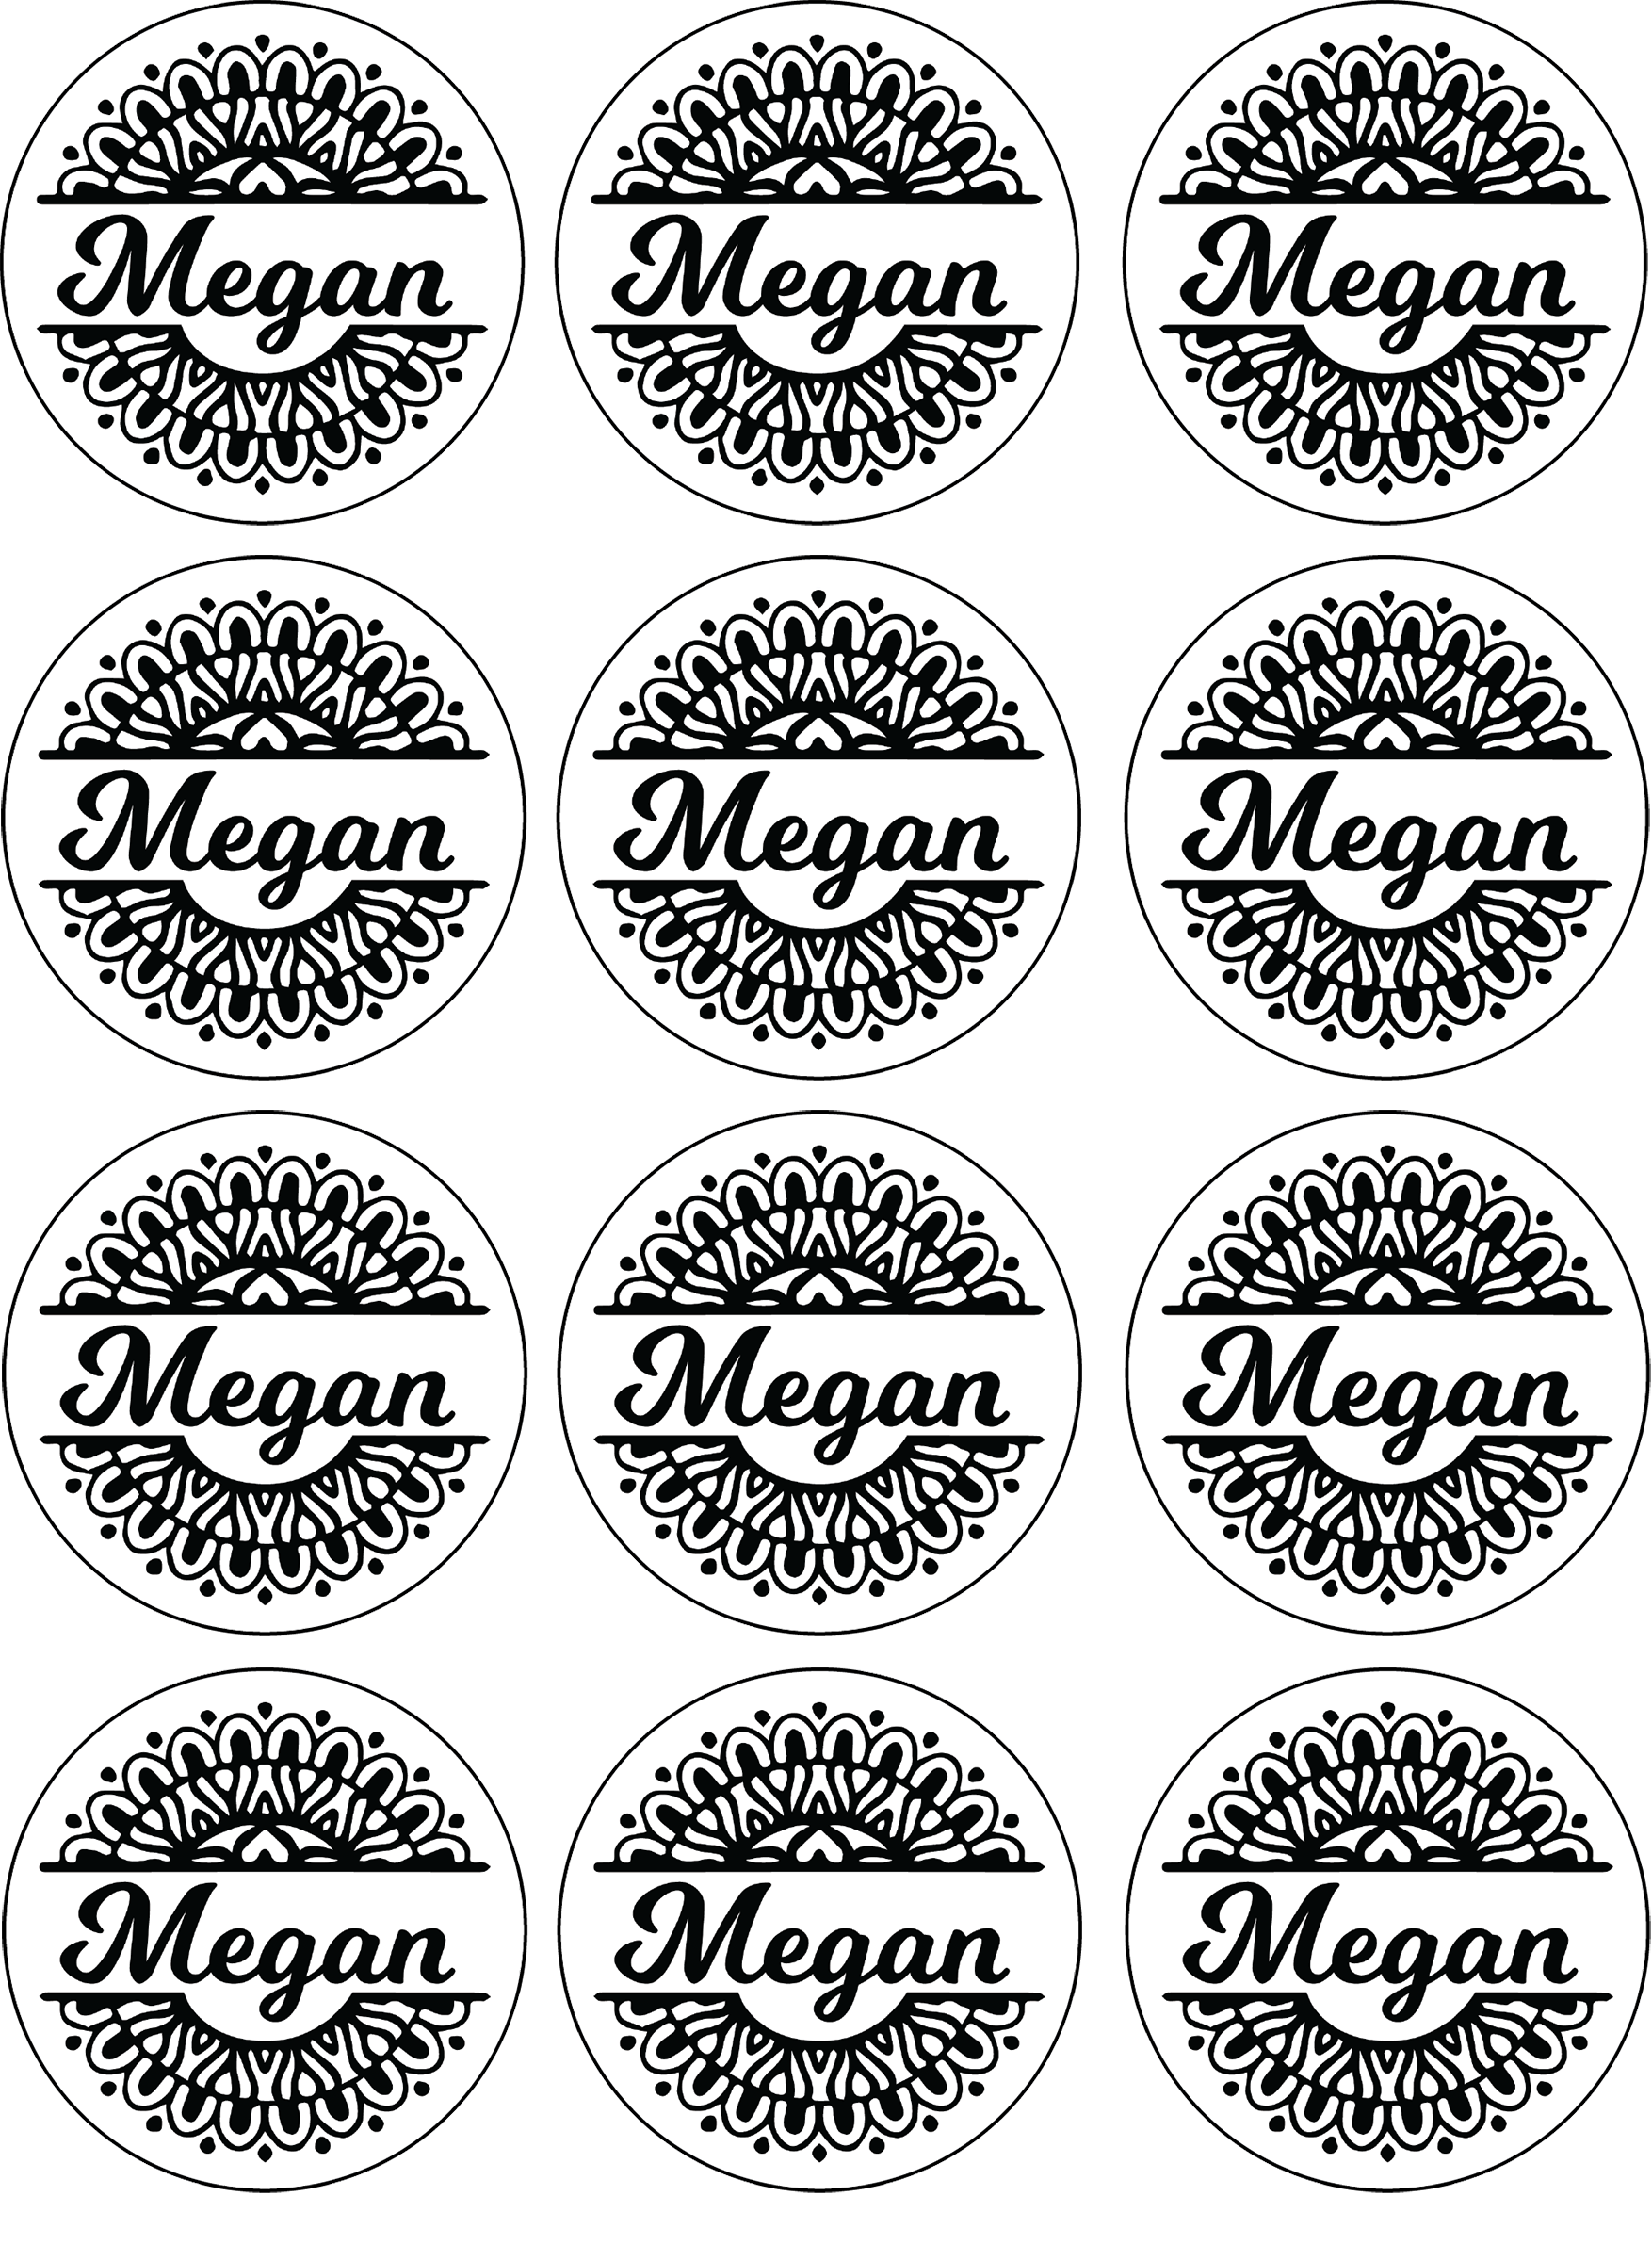 Download the sticker file at https jennifermaker com wp content uploads 2017 07 megan stickers png go